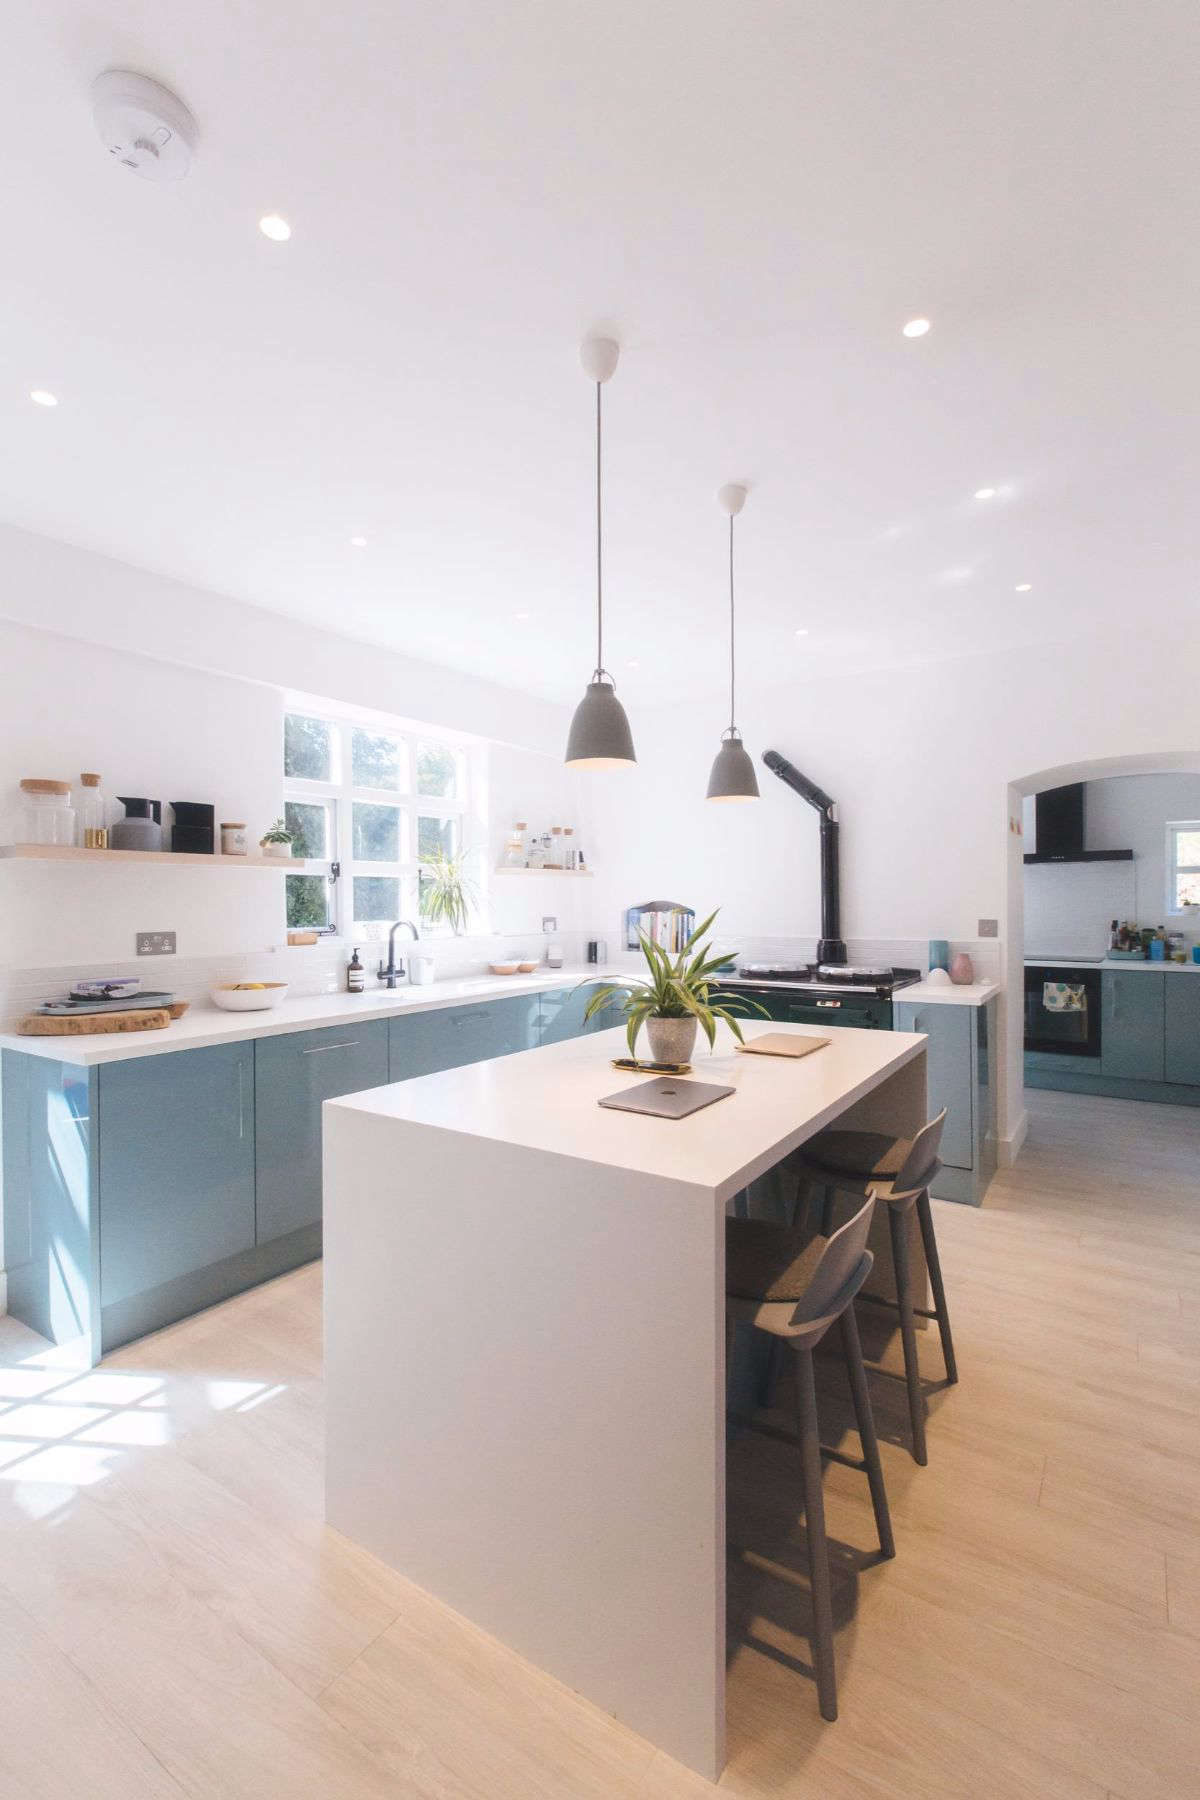 Browse the Best Amateur UK Interiors in Our Design Awards - Remodelista